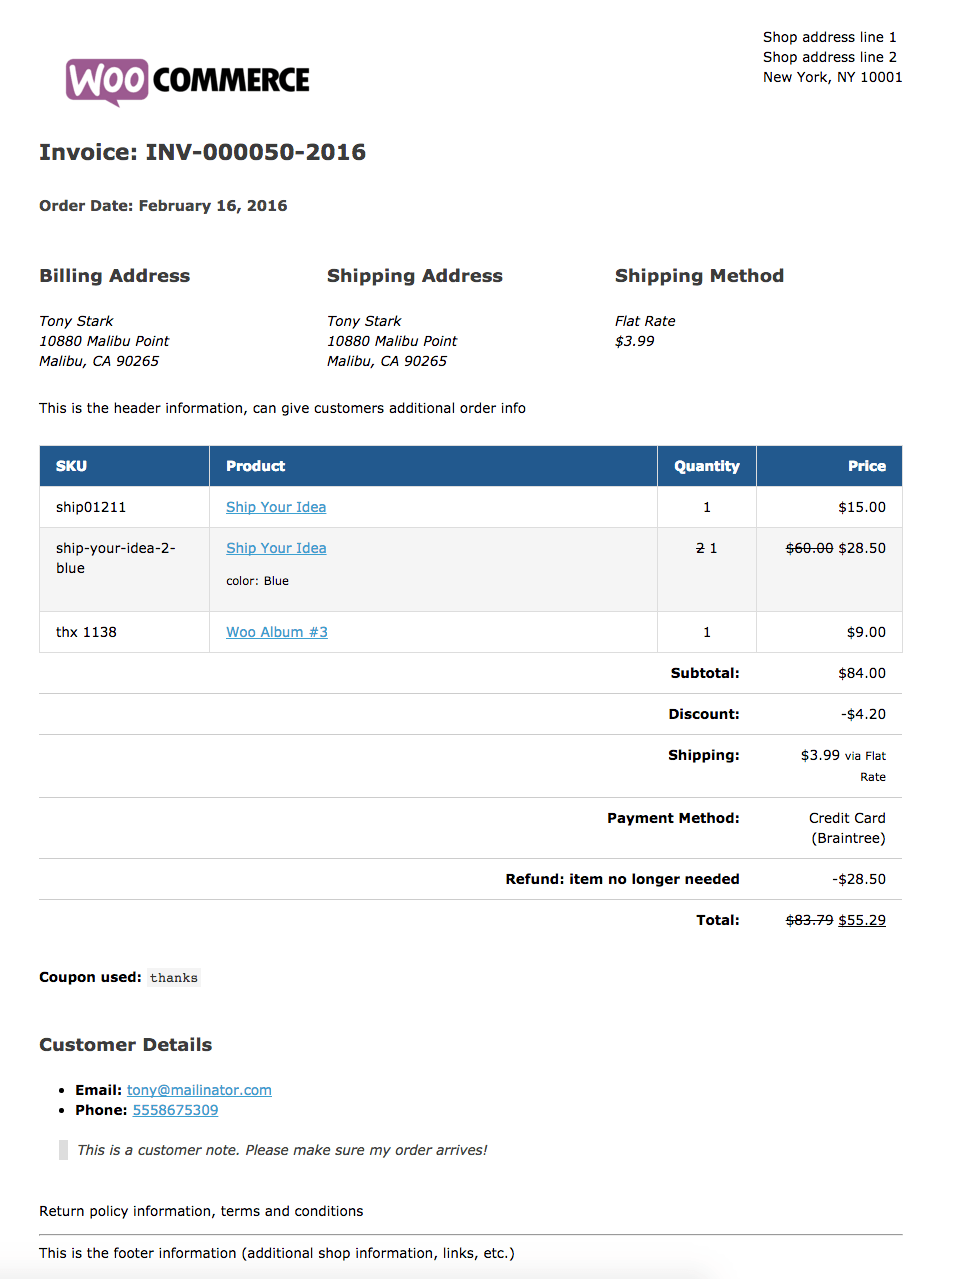 Pigbrotherus  Pleasing Woocommerce Print Invoices Amp Packing Lists  Woocommerce Docs With Licious Sample Invoice With Nice Invoice Pro Also Invoice Generator Com In Addition General Contractor Invoice Template And New Car Invoice Price As Well As How Can I Make An Invoice Additionally Toyota Camry Invoice From Docswoocommercecom With Pigbrotherus  Licious Woocommerce Print Invoices Amp Packing Lists  Woocommerce Docs With Nice Sample Invoice And Pleasing Invoice Pro Also Invoice Generator Com In Addition General Contractor Invoice Template From Docswoocommercecom